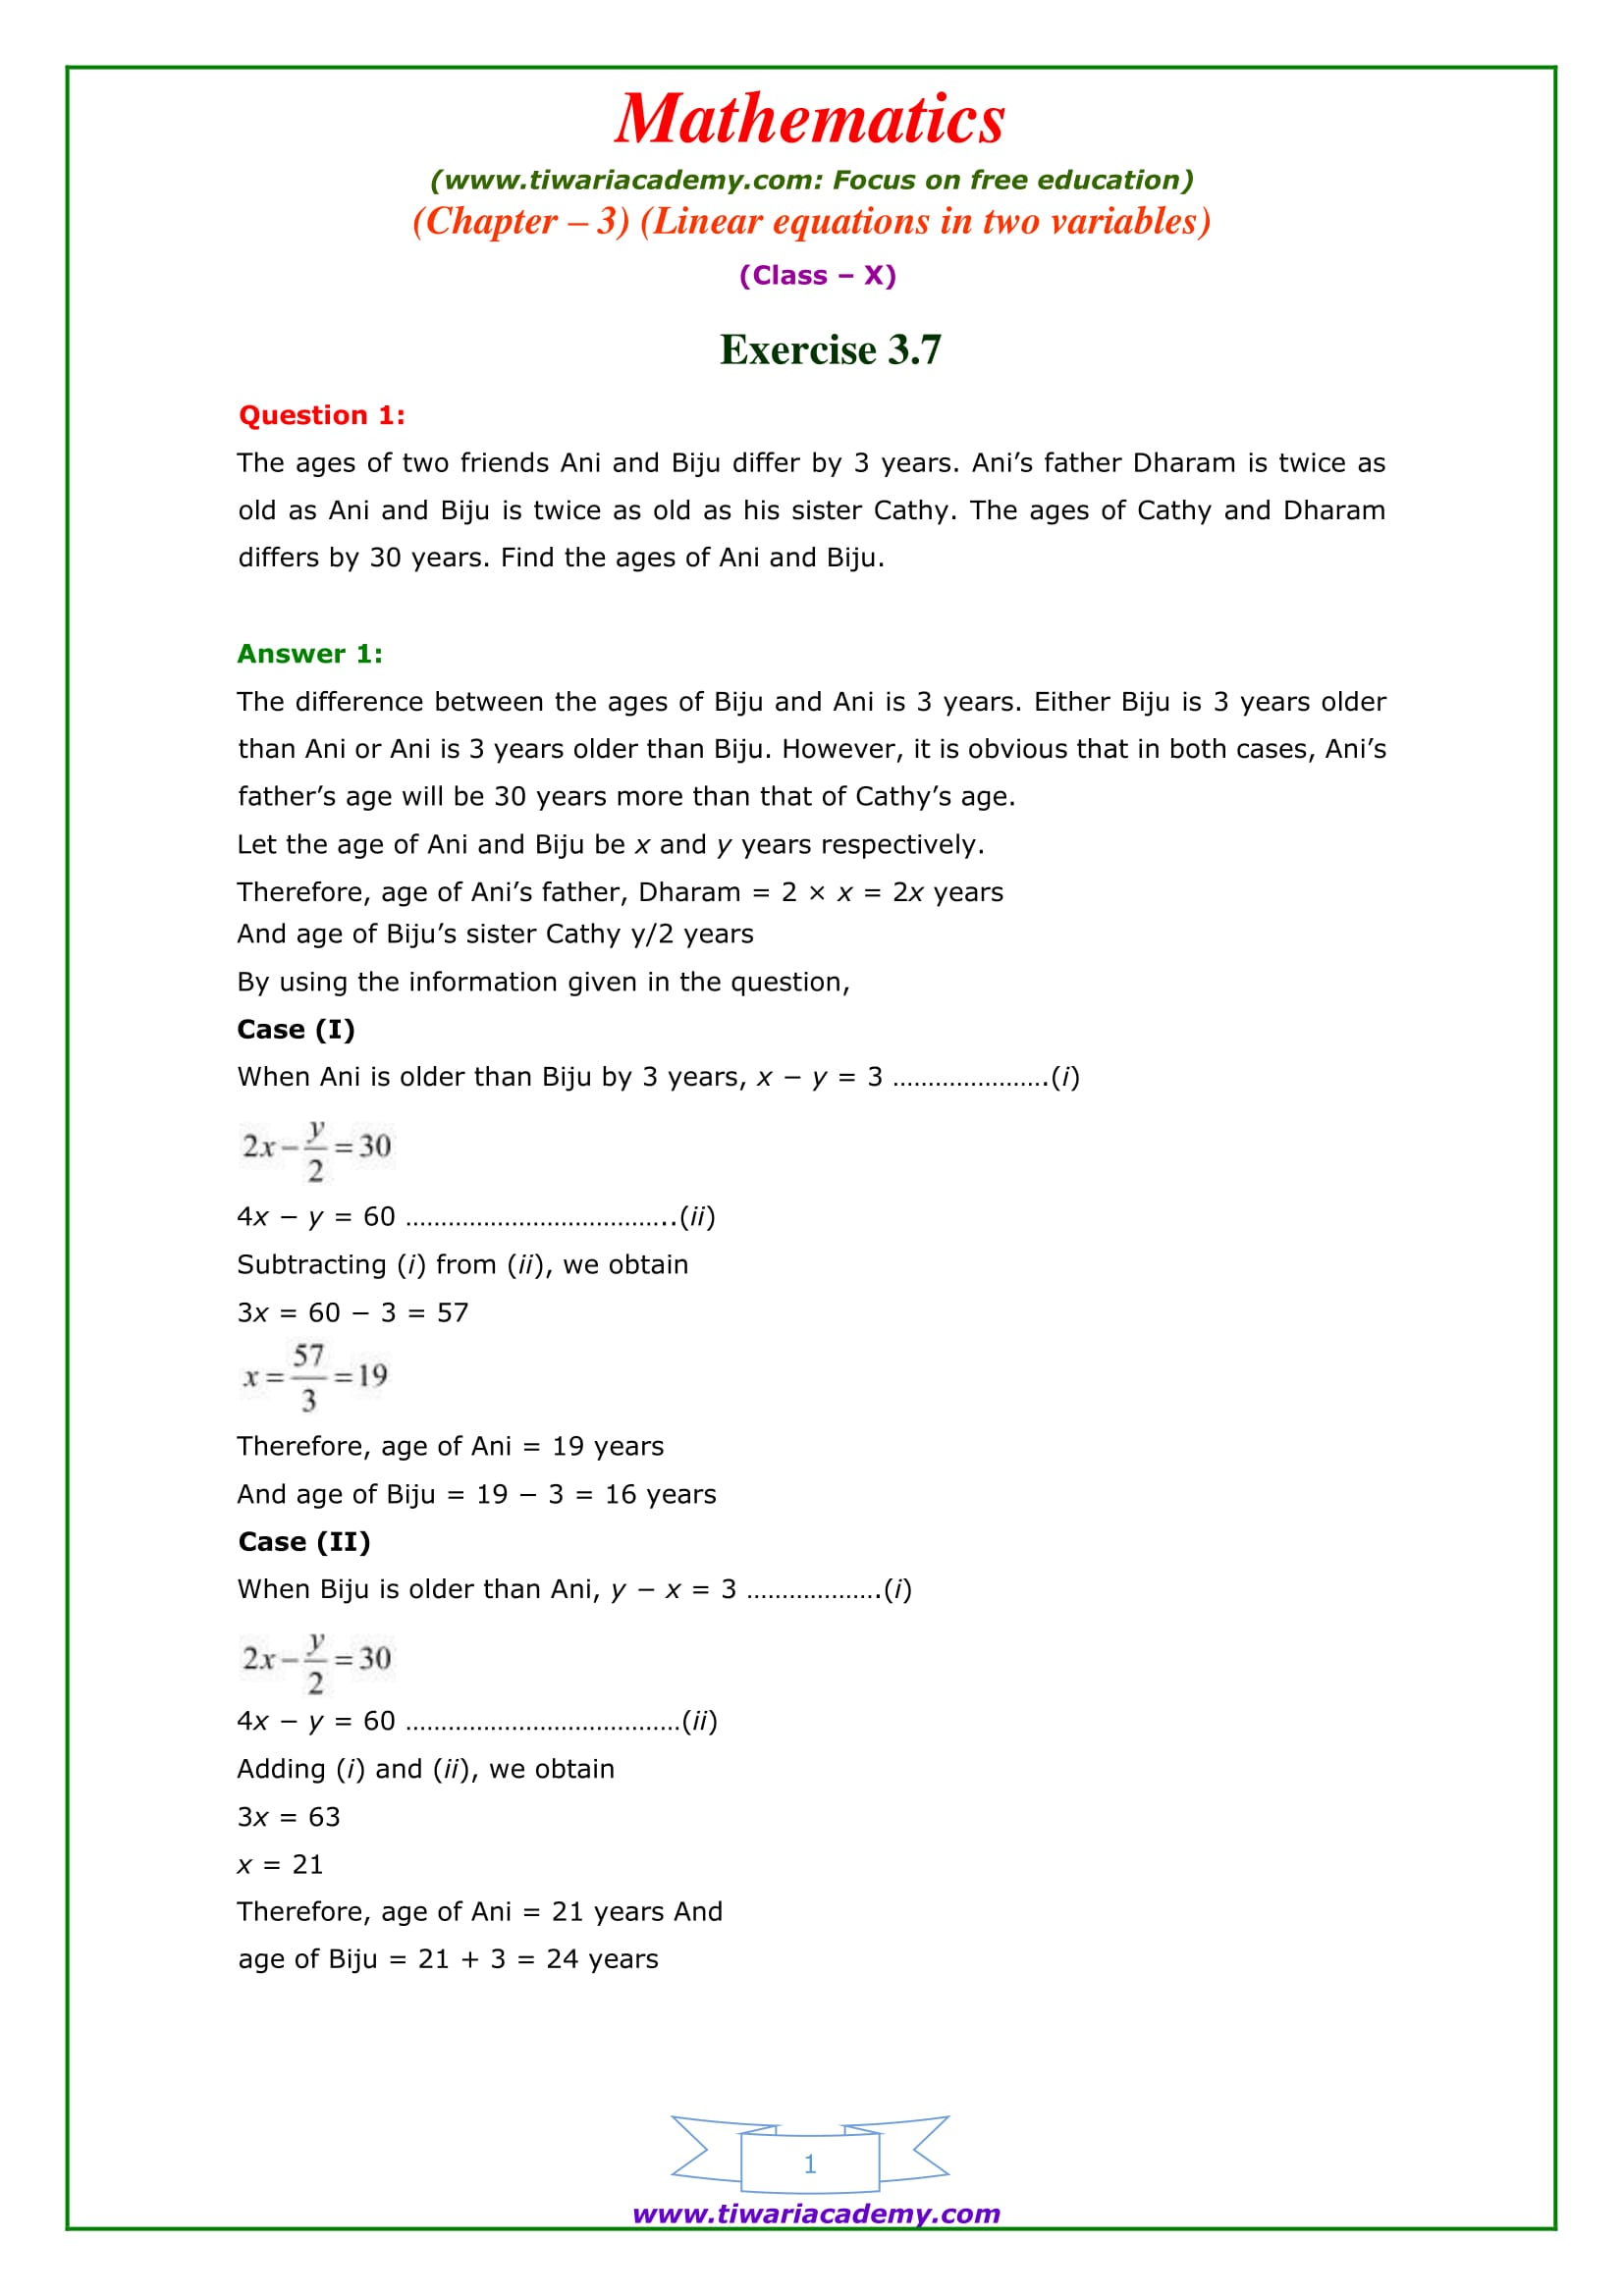 NCERT Solutions for Class 10 Maths Chapter 3 Exercise 3.7 Optional